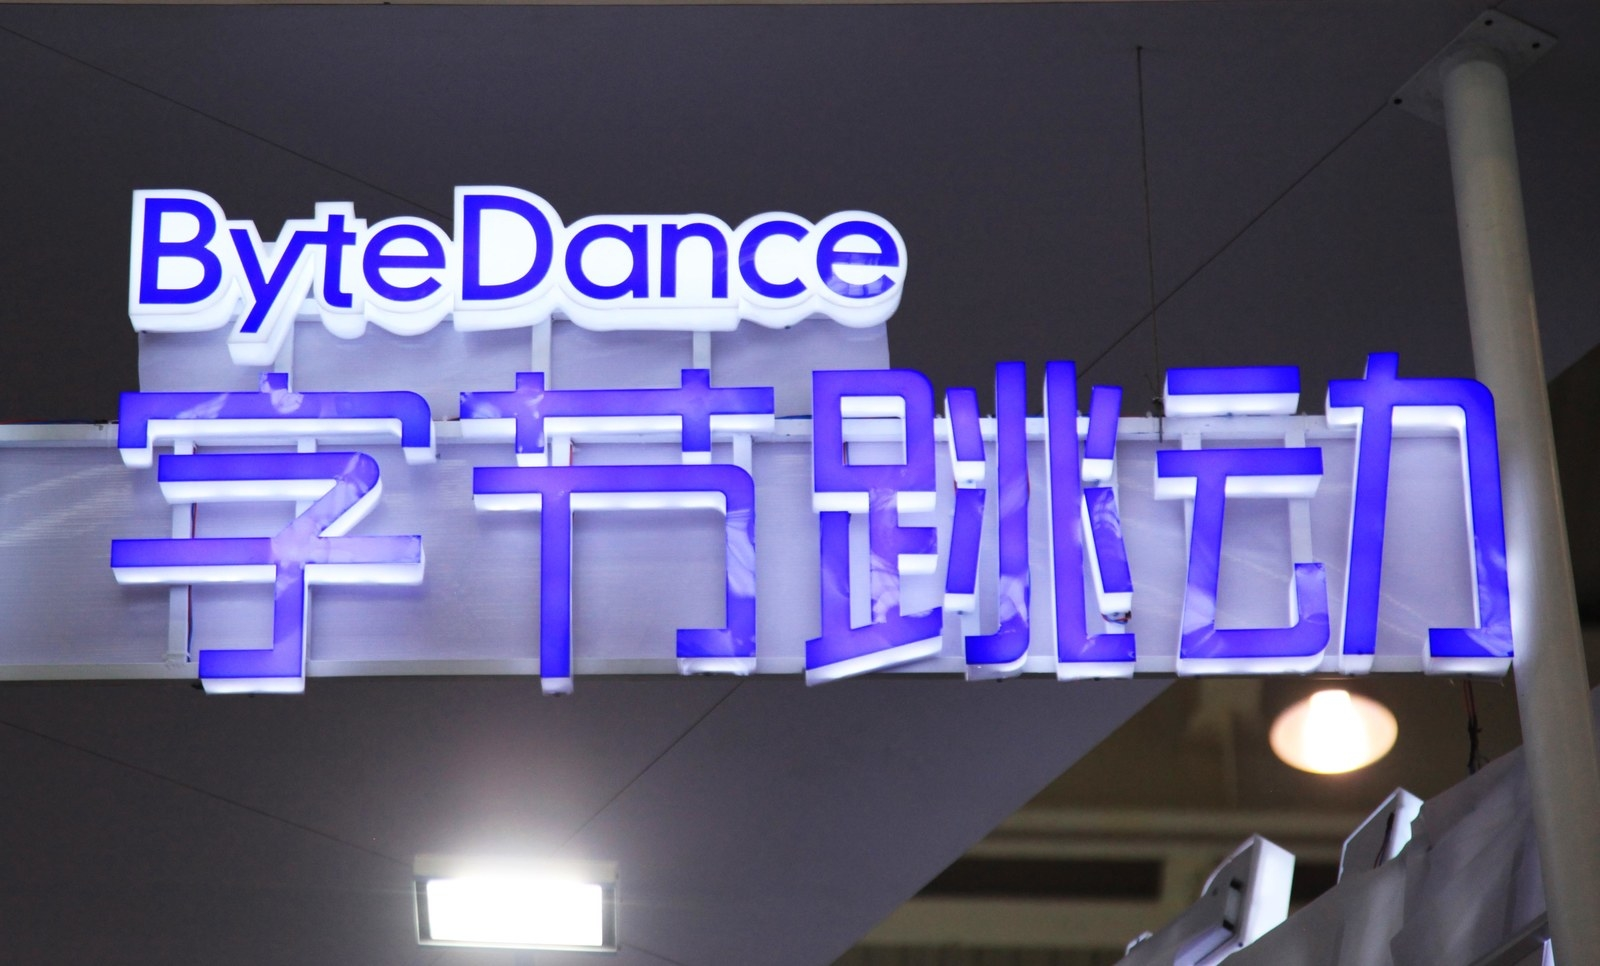 The ByteDance symbol during the 14th China International Software Product and Information Service Expo on September 1, 2018 in Nanjing, Jiangsu Province of China.